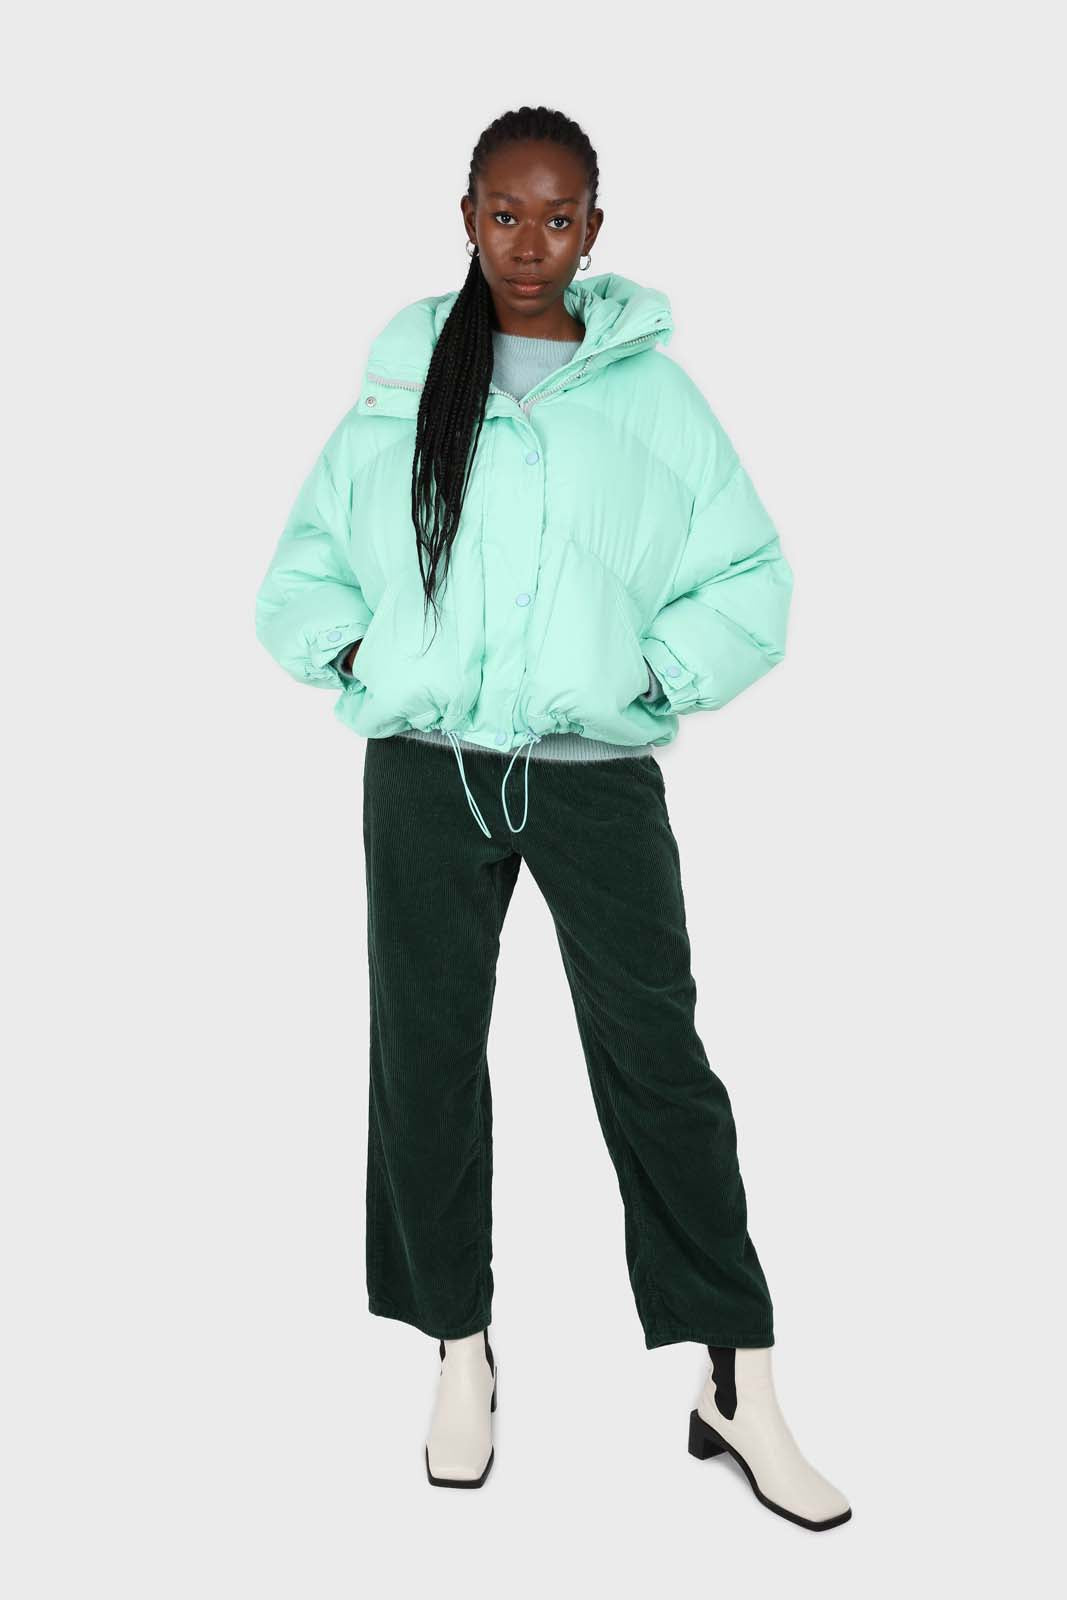 Mint green hooded thick puffer jacket1sx